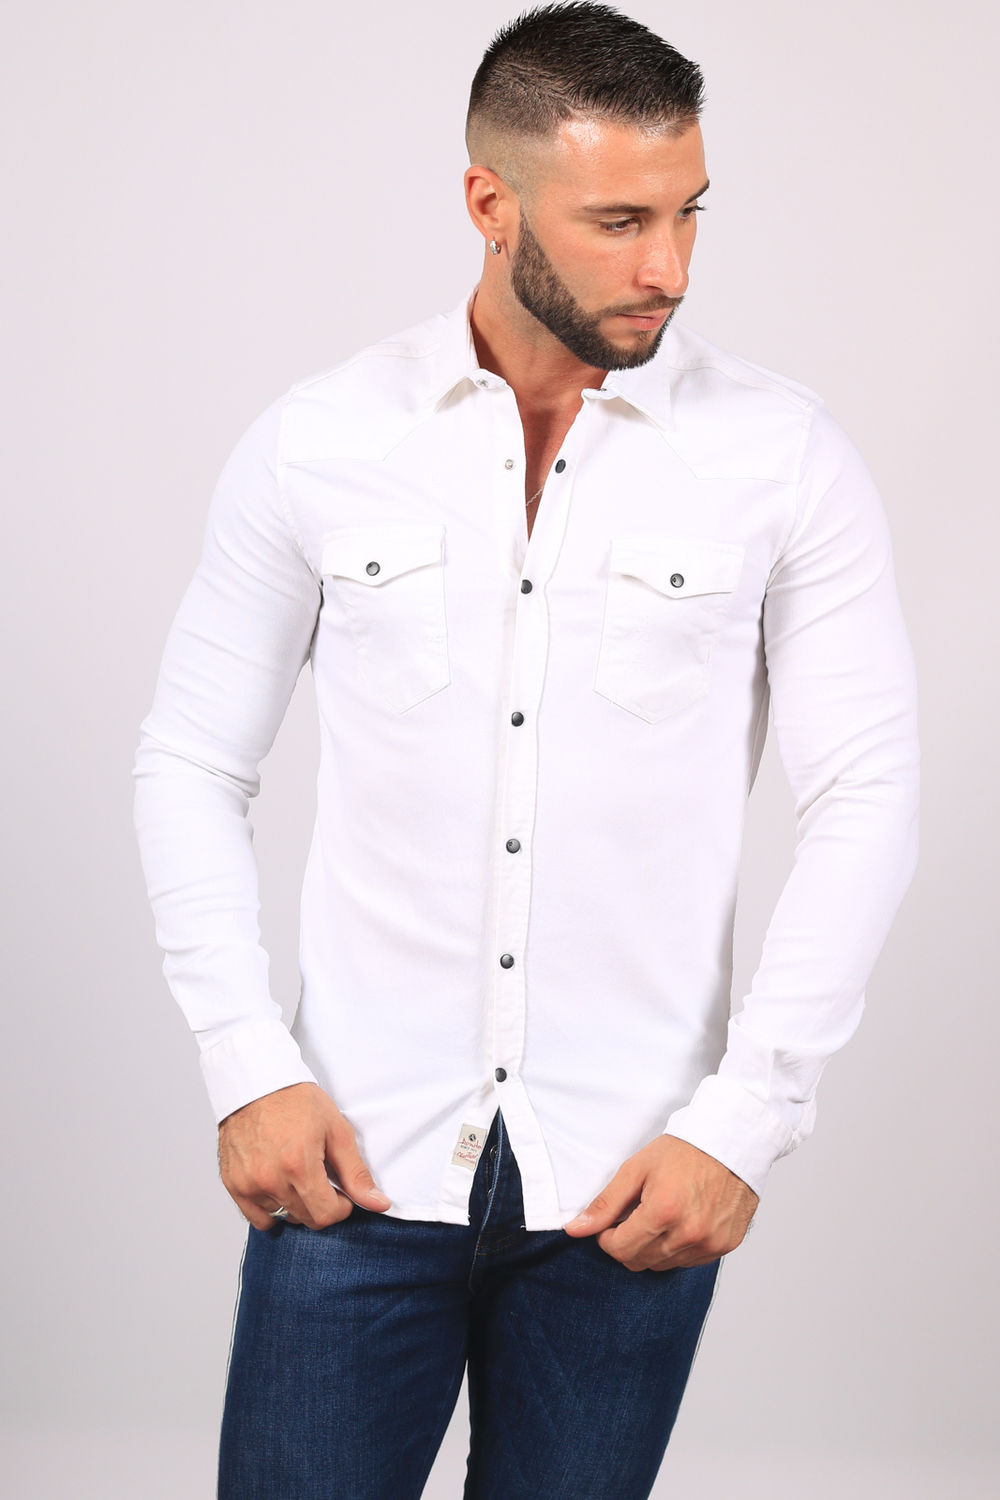 Chemise Homme 5109 Blanc 5109 Jeans Blanc Homme Jeans Chemise Chemise DH9eY2WIbE